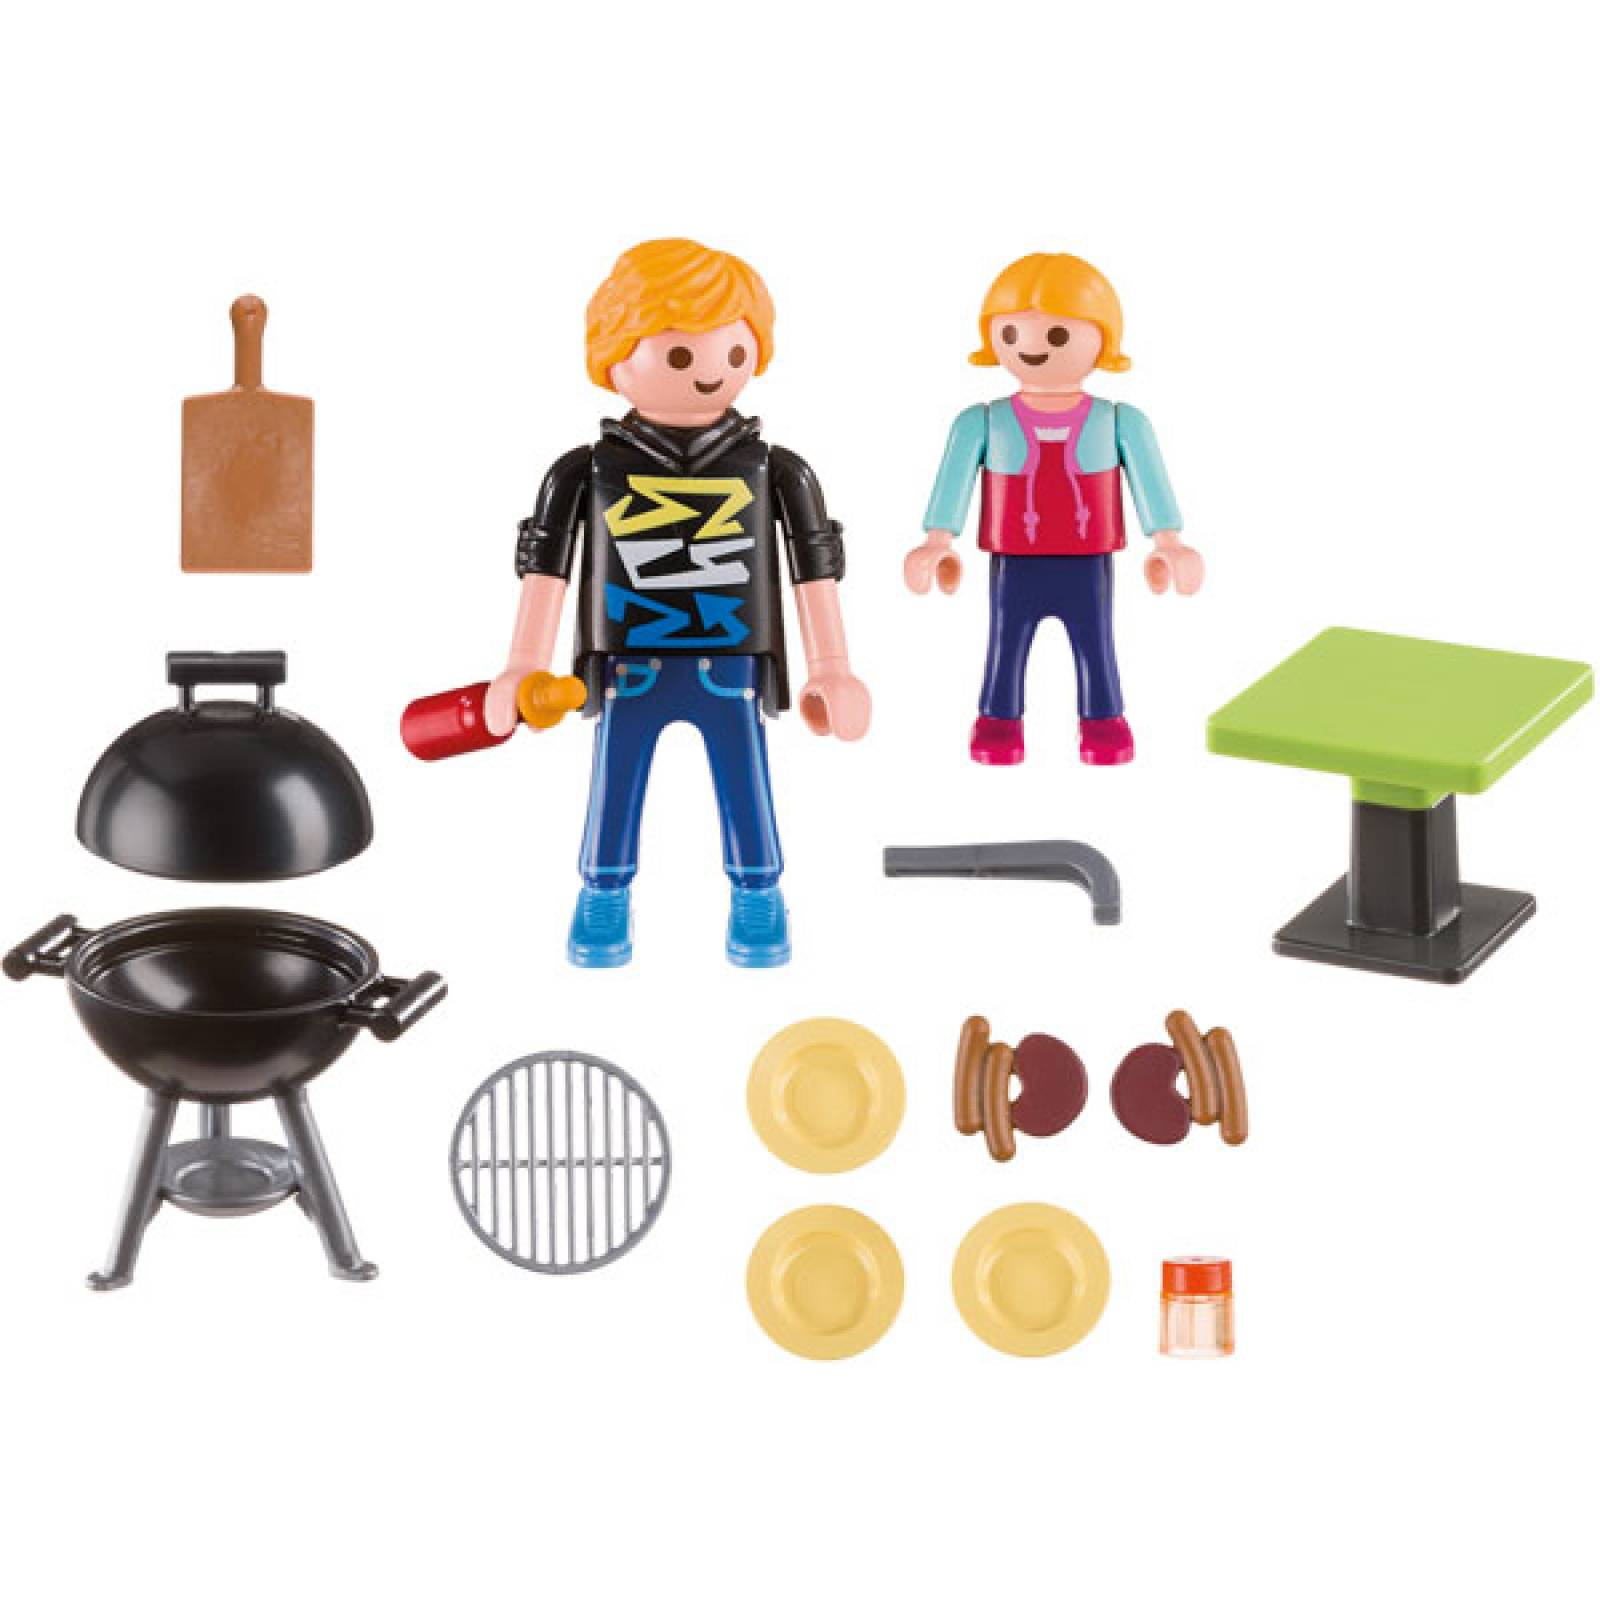 Barbecue Small Carrying Case Playmobil 5649 thumbnails